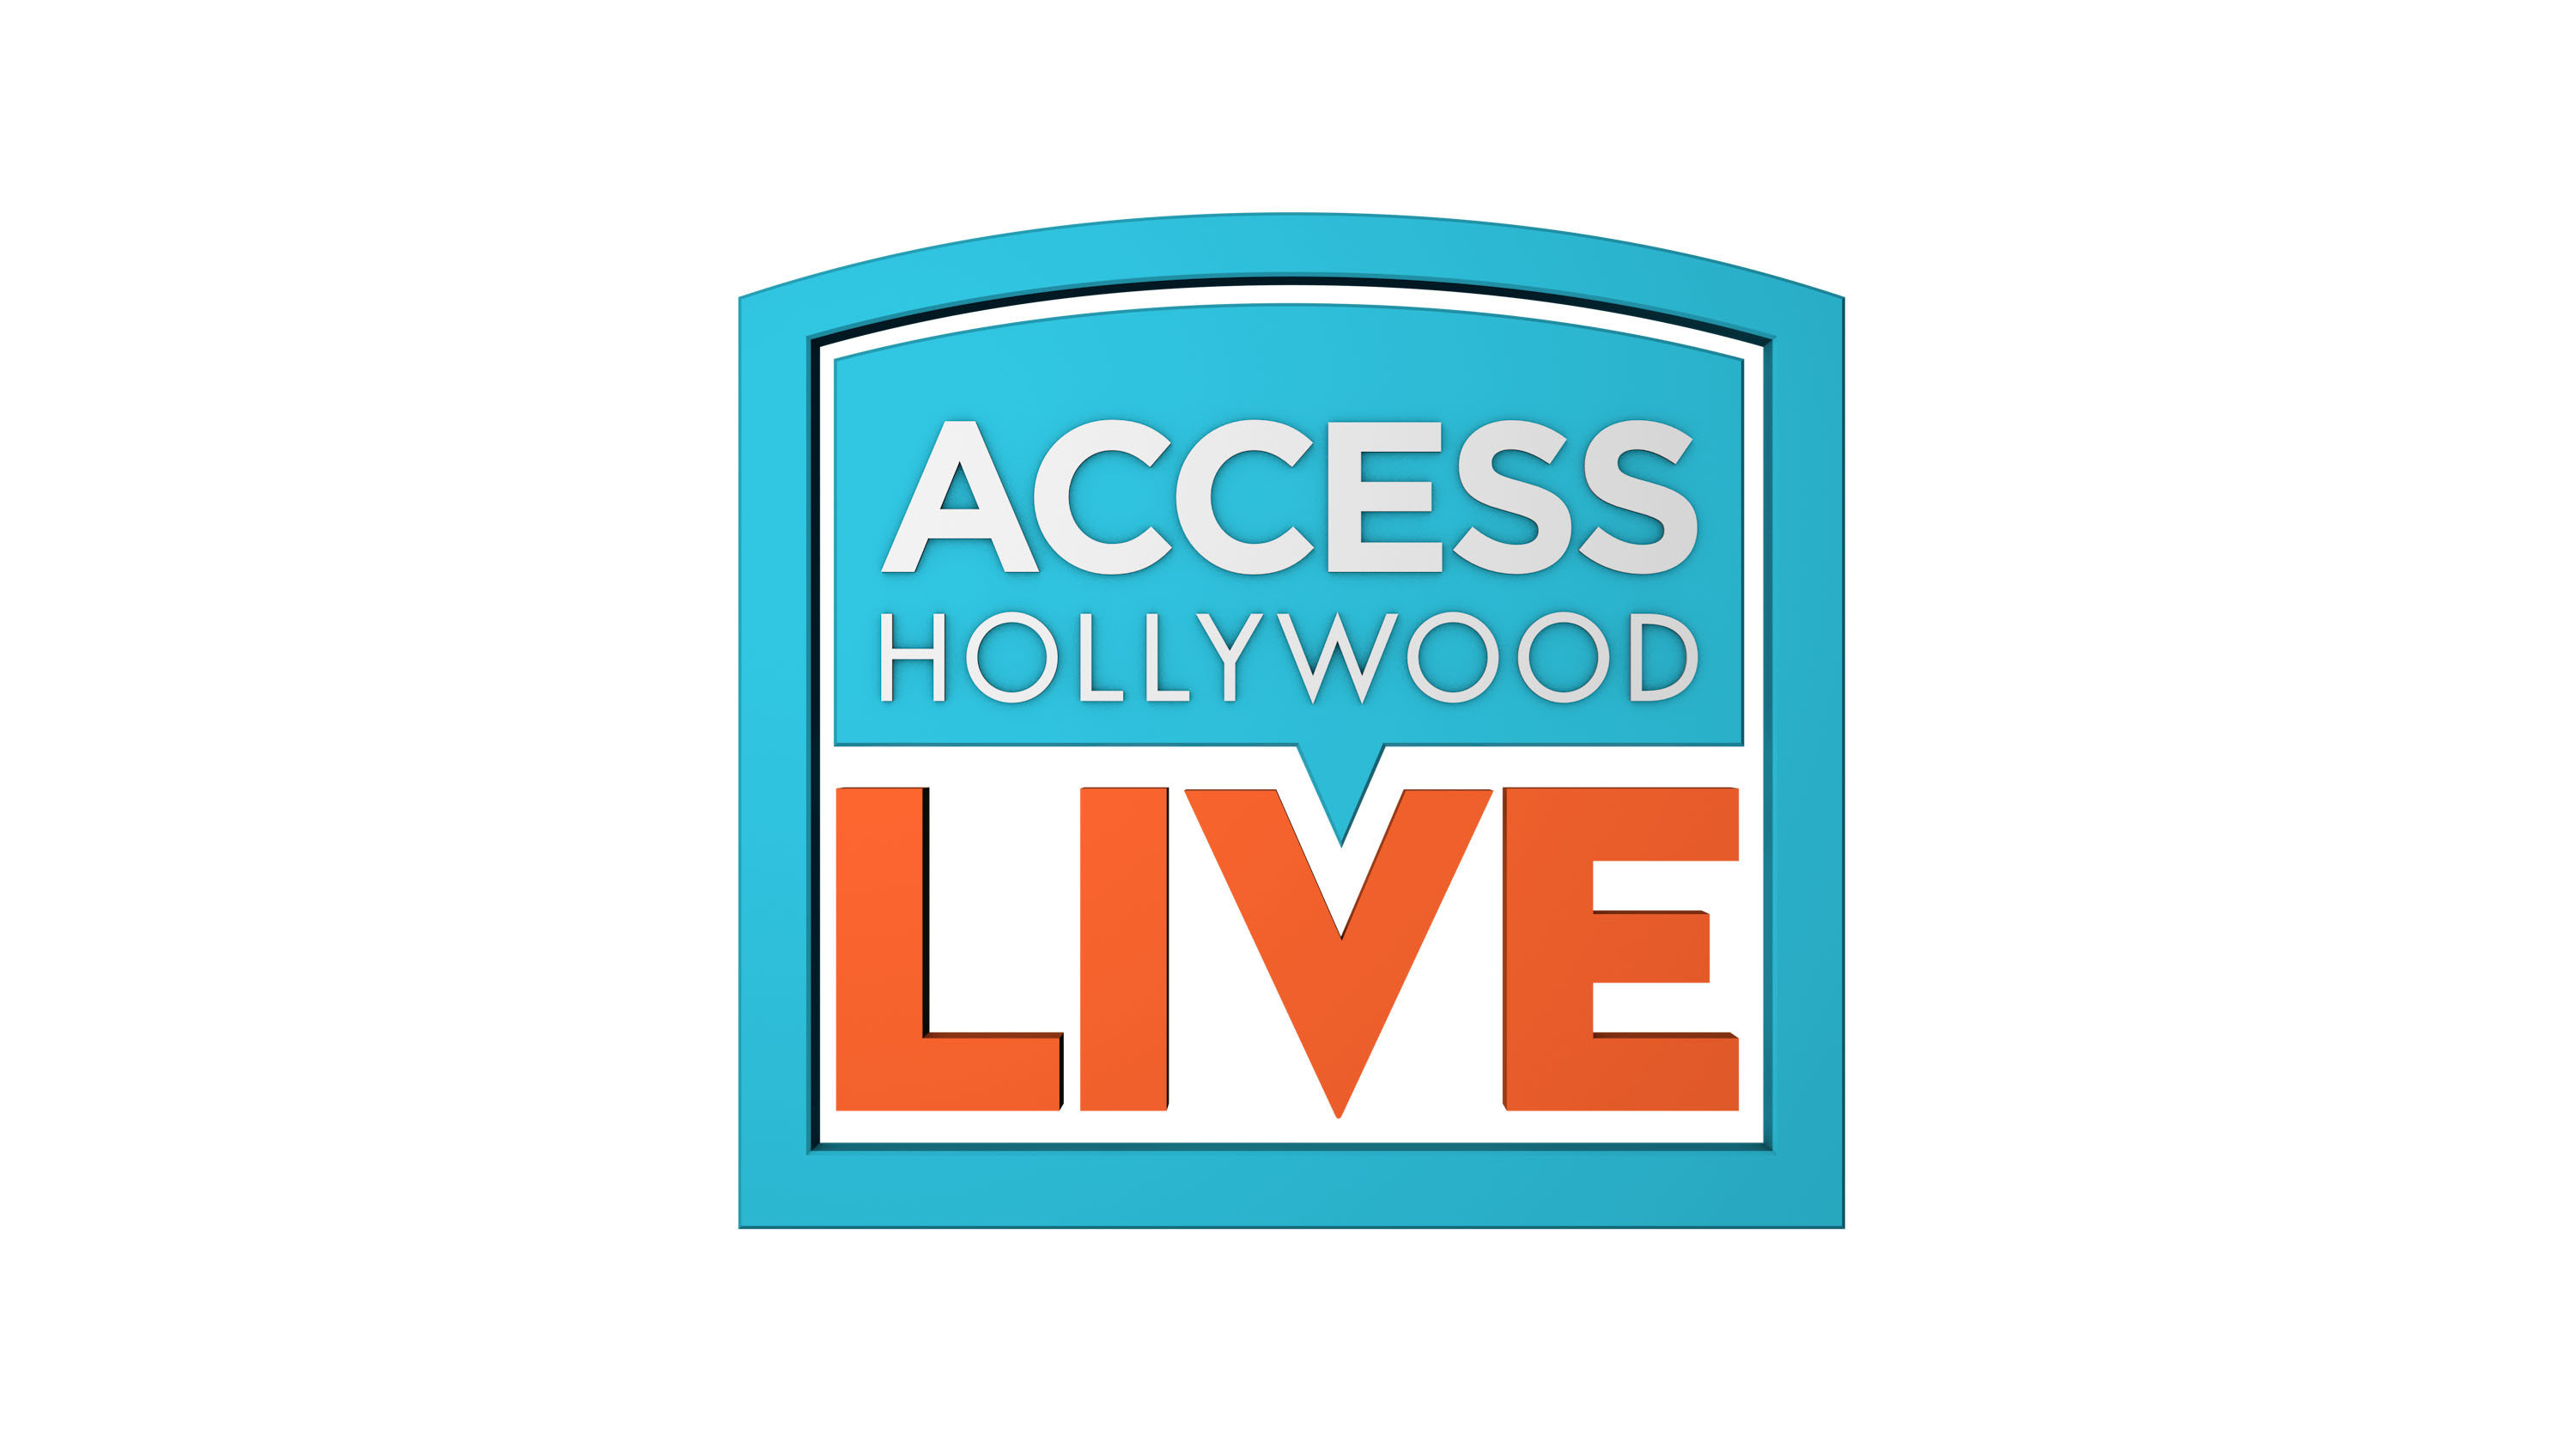 Access Hollywood Live (2010)